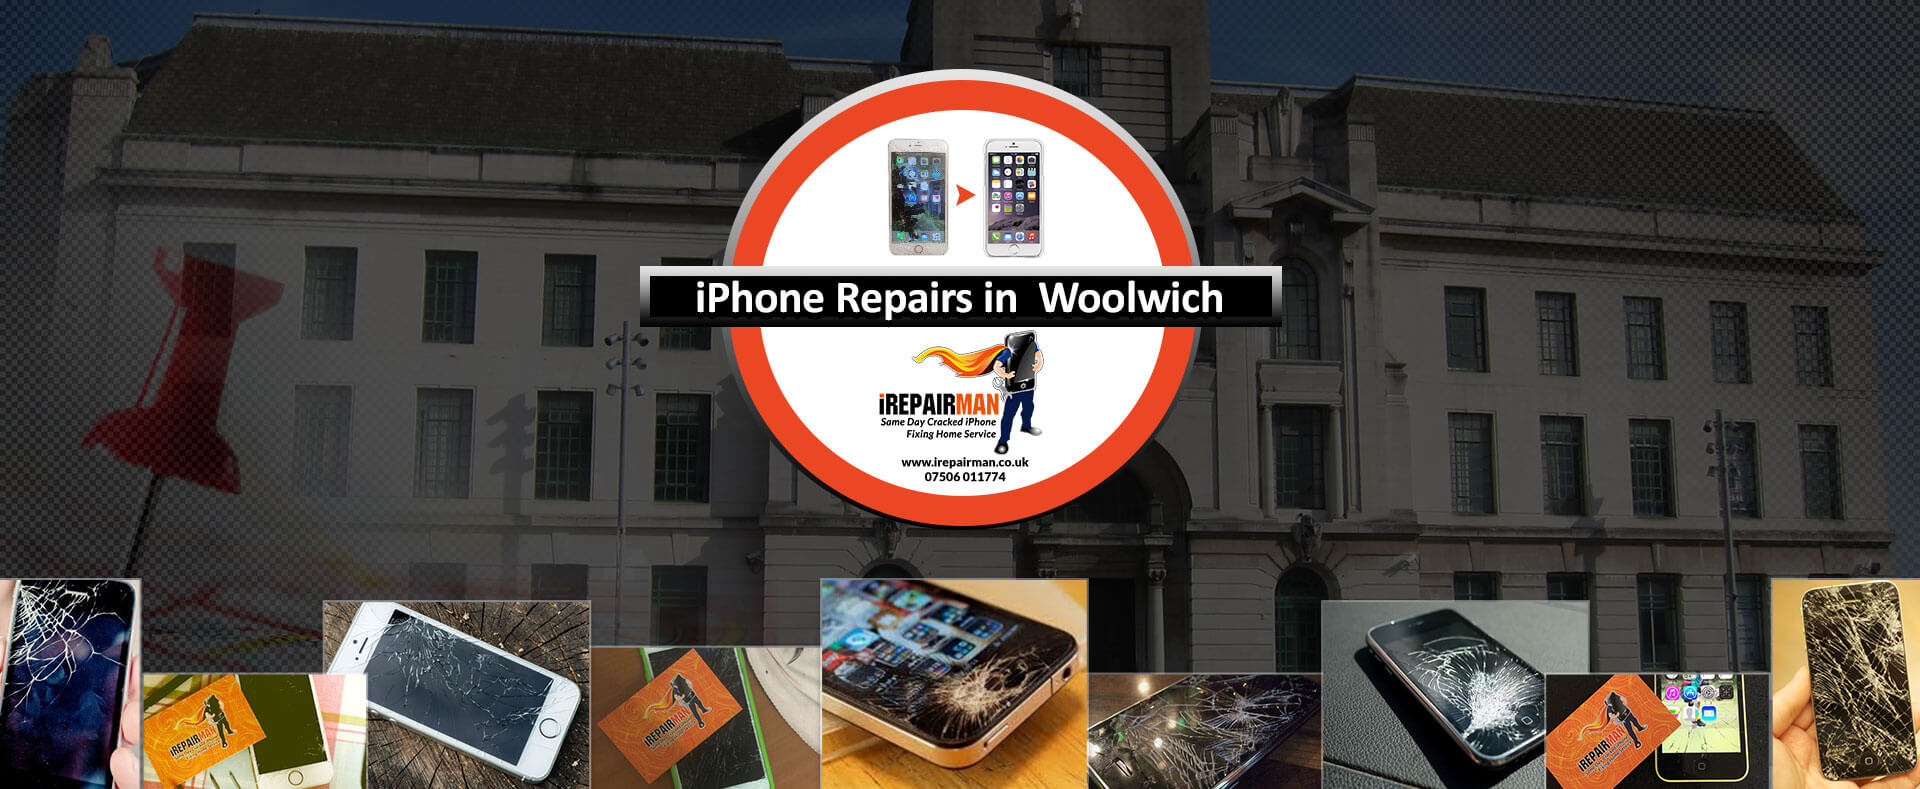 iPhone Repairs in Woolwich